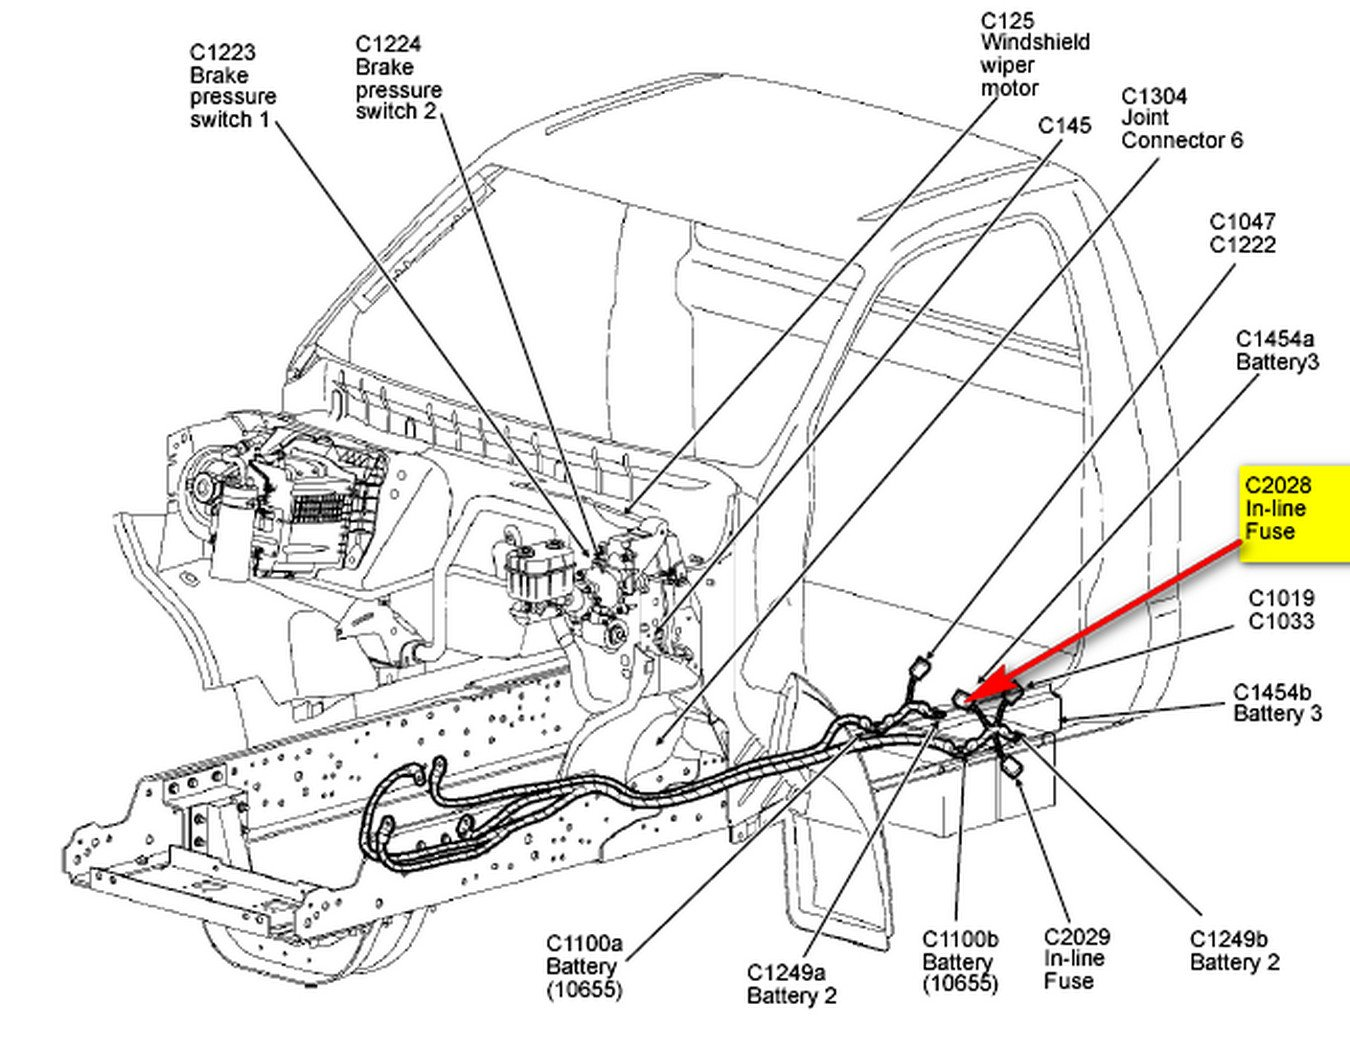 We Have A Ford F650 2008 Model With Cat Engine C7 No Windshield Wiper Diagram Graphic